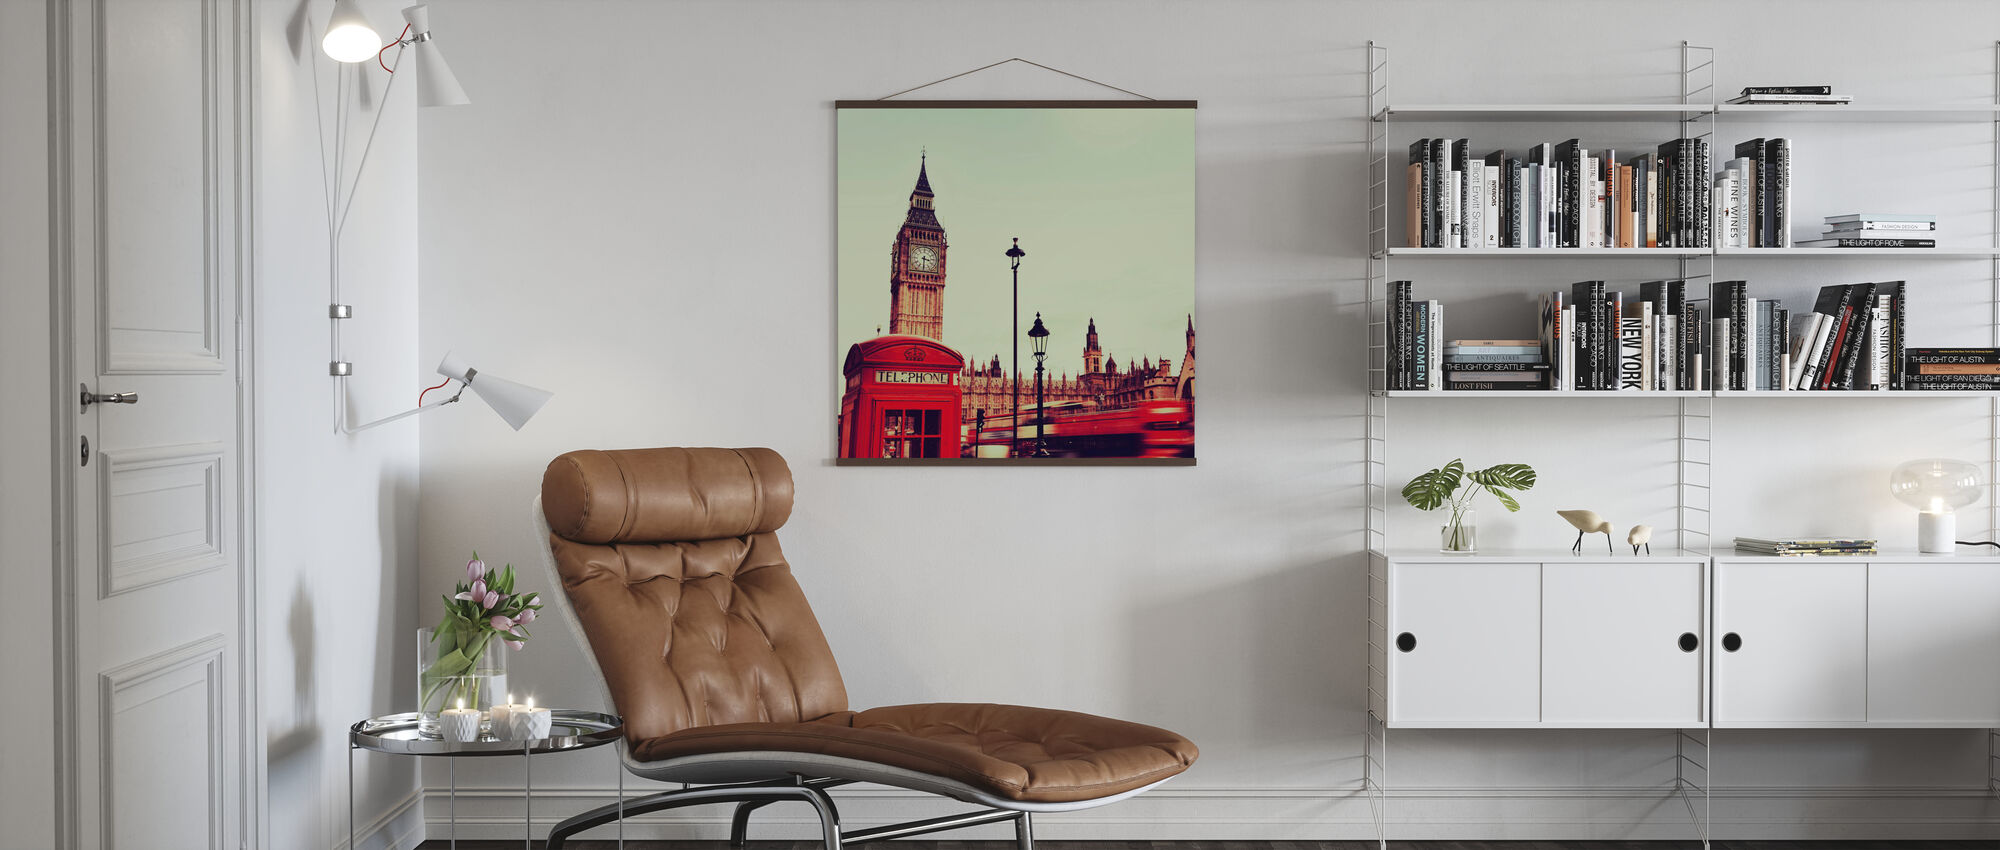 Telephone Booth and Big Ben - Poster - Living Room